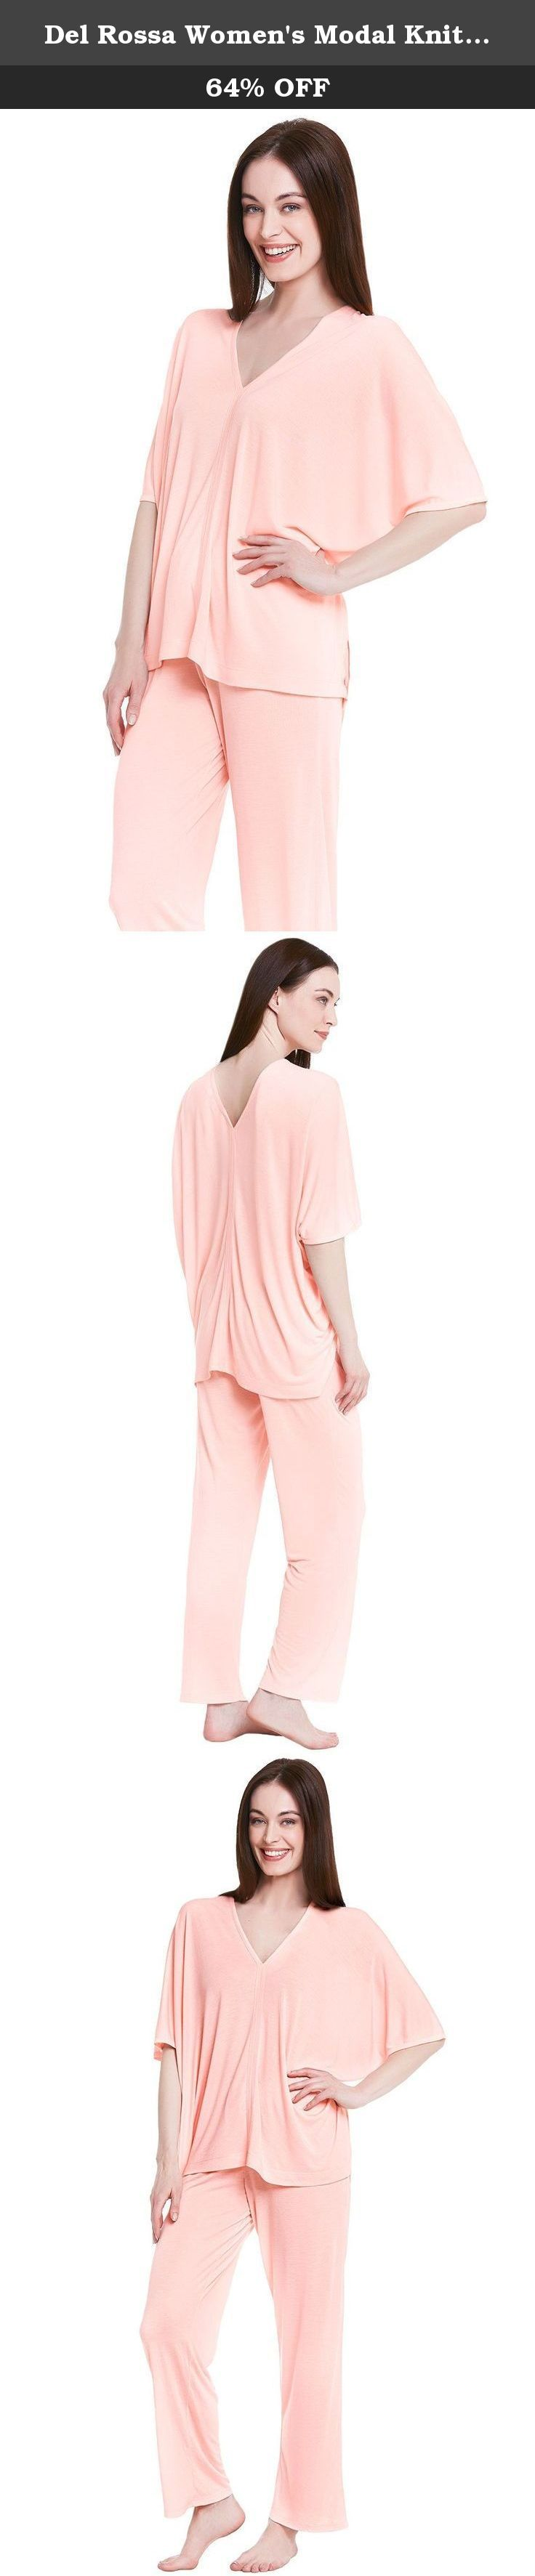 Del Rossa Women's Modal Knit Pajamas, Long Loose V-Neck Pj Set, Medium Pink (A0412PNKMD). These soft, long knit pajamas from Alexander Del Rossa are comfortable, durable, and classy. Made from a premium 65% modal, 35% polyester knit blend, this womens pj set is breathable and easy on the skin. Designed with you in mind, this set is perfect for lounging around the house - even when guests are present. Rich in features, we trust that these pajamas for women will not disappoint. Pajama…